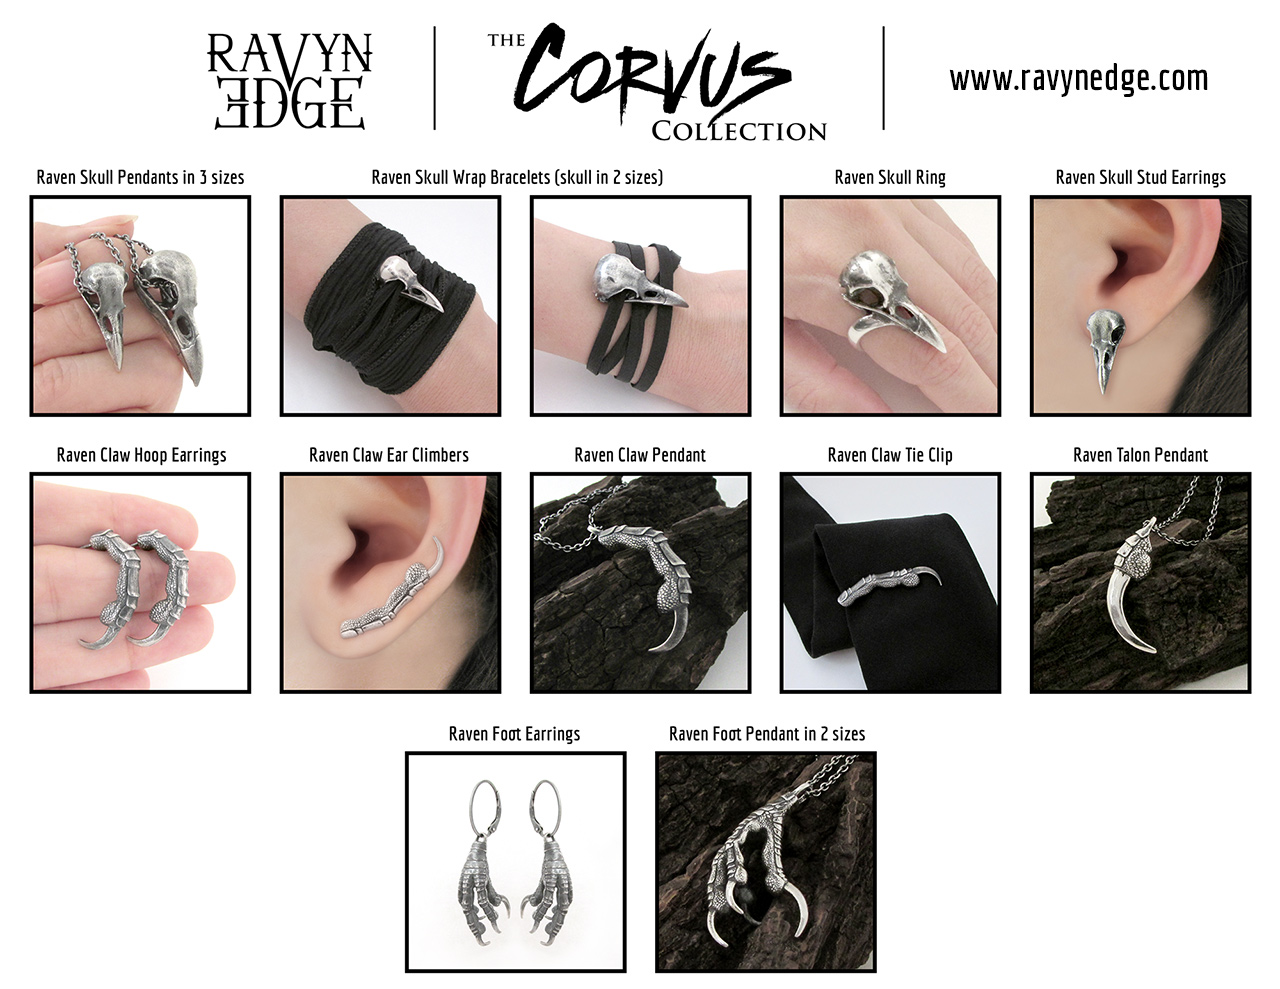 Tiffany J. Tinsley of RavynEdge is Set to Wow Jewelry Lovers with Her All-New Signature Line of Jewelry, The Corvus Collection